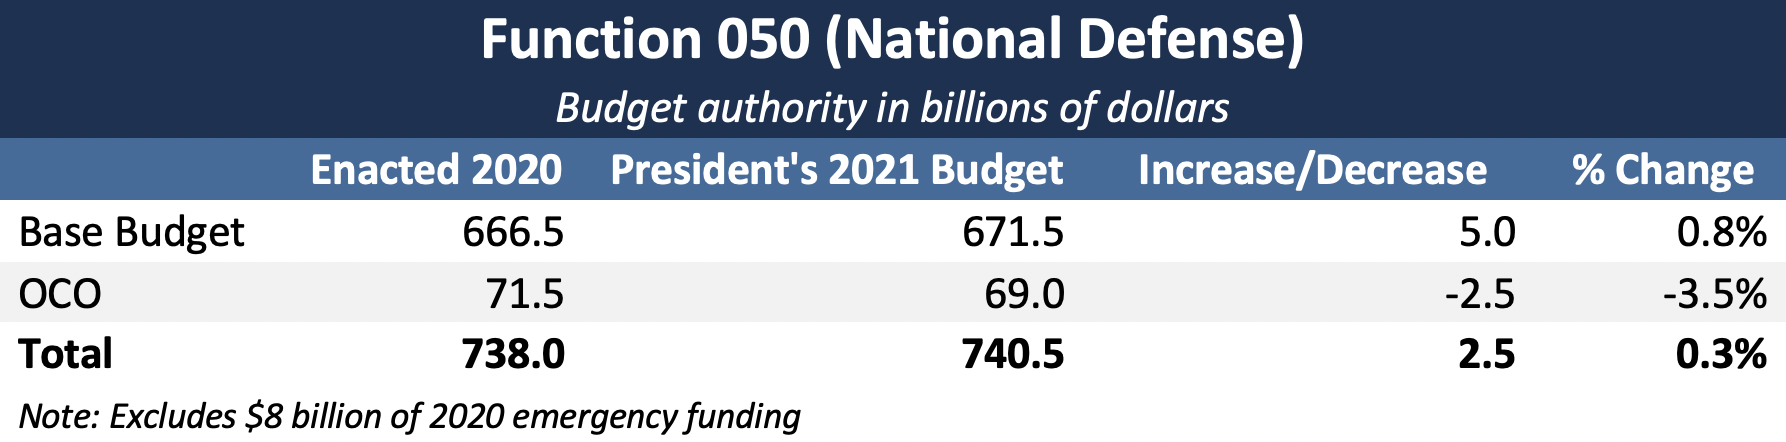 Trump budget includes 741 billion for Function 050: Pentagon, nuclear weapons activities, the FBI, and Dept of Homeland Security.